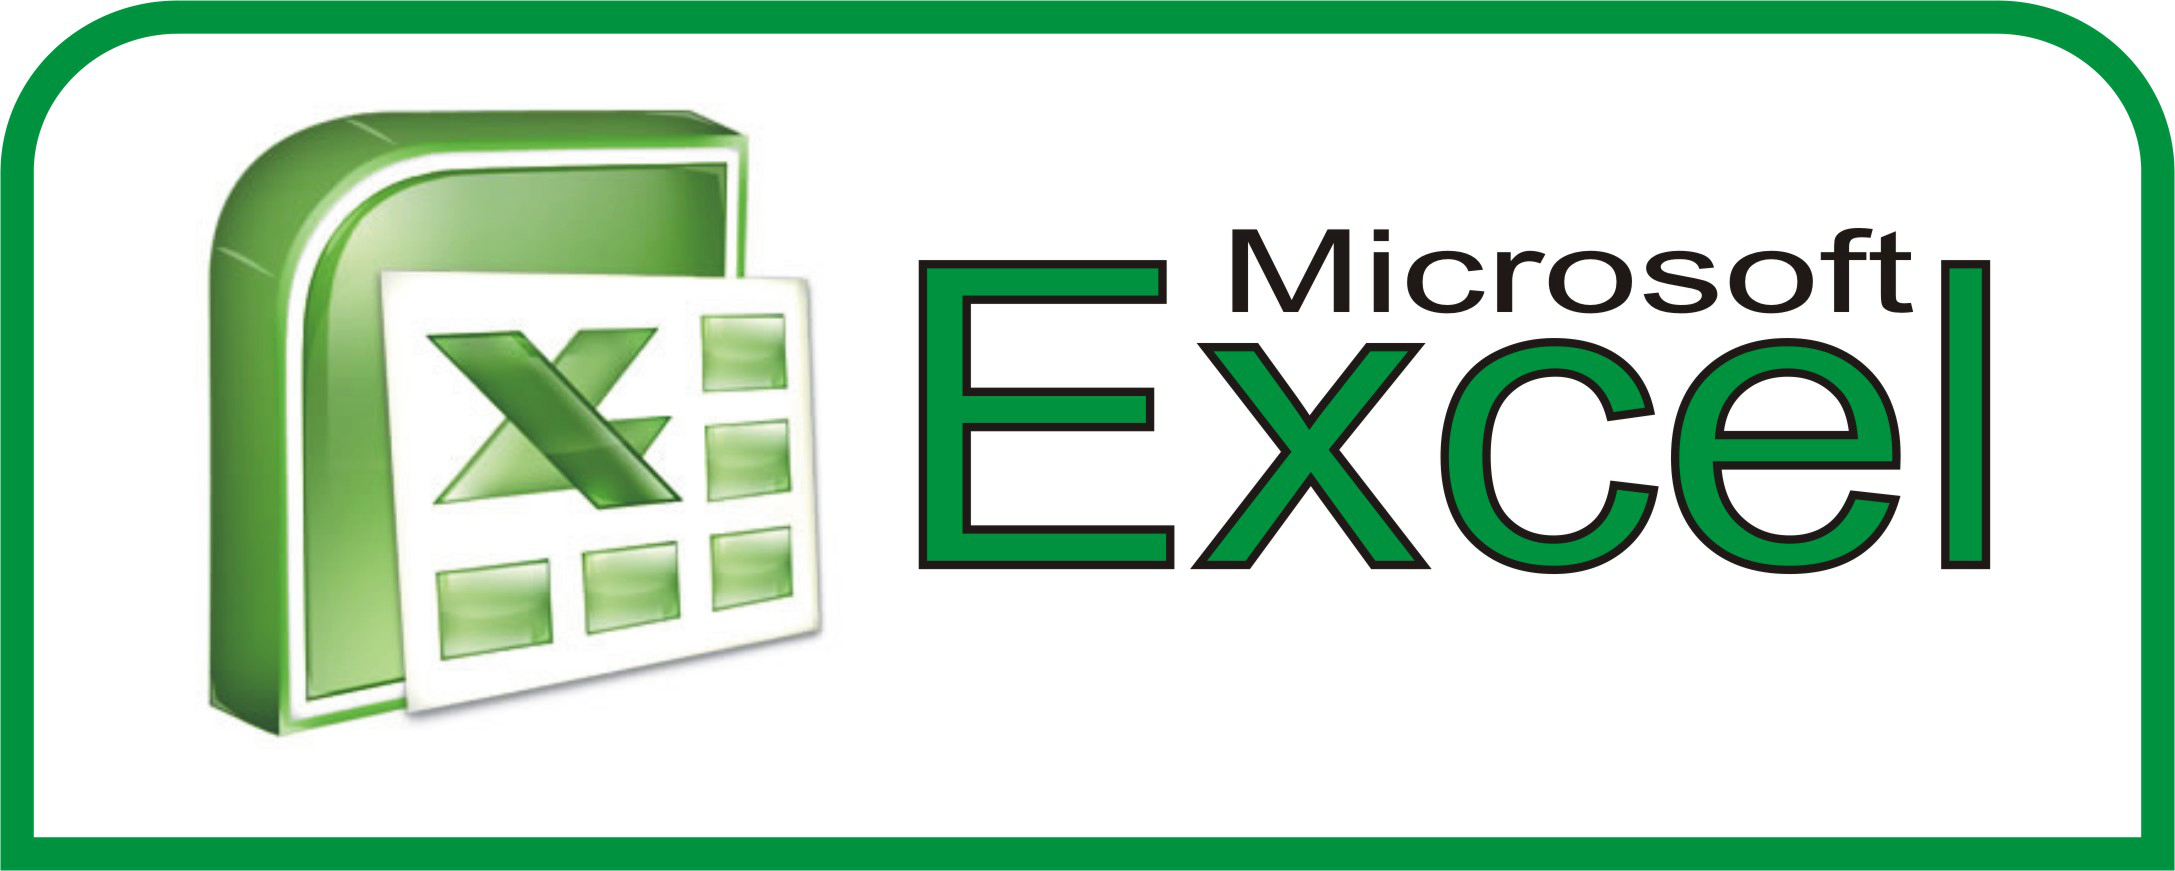 Ediblewildsus  Fascinating  Excel Shortcuts You Probably Didnt Know About  Techdissected With Magnificent Basic Excel Functions List Besides Excel Matrix Functions Furthermore Multiple Line Graph Excel With Nice Vacation Tracker Excel Template Also Excel Running Log In Addition Excel Function For Multiplication And Excel Timecard As Well As Mortgage Payment In Excel Additionally Using Dollar Sign In Excel From Techdissectedcom With Ediblewildsus  Magnificent  Excel Shortcuts You Probably Didnt Know About  Techdissected With Nice Basic Excel Functions List Besides Excel Matrix Functions Furthermore Multiple Line Graph Excel And Fascinating Vacation Tracker Excel Template Also Excel Running Log In Addition Excel Function For Multiplication From Techdissectedcom